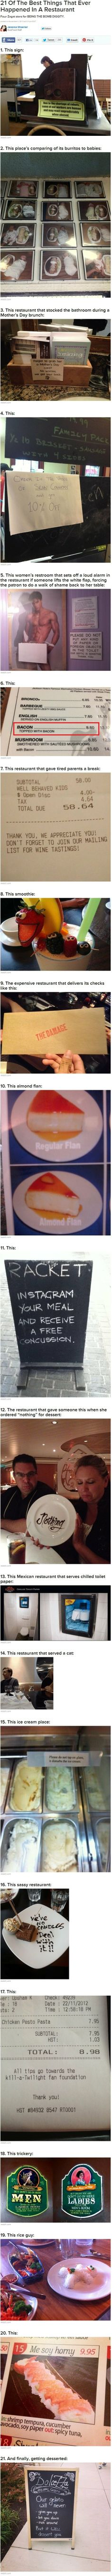 21 funny things that happened in restaurants